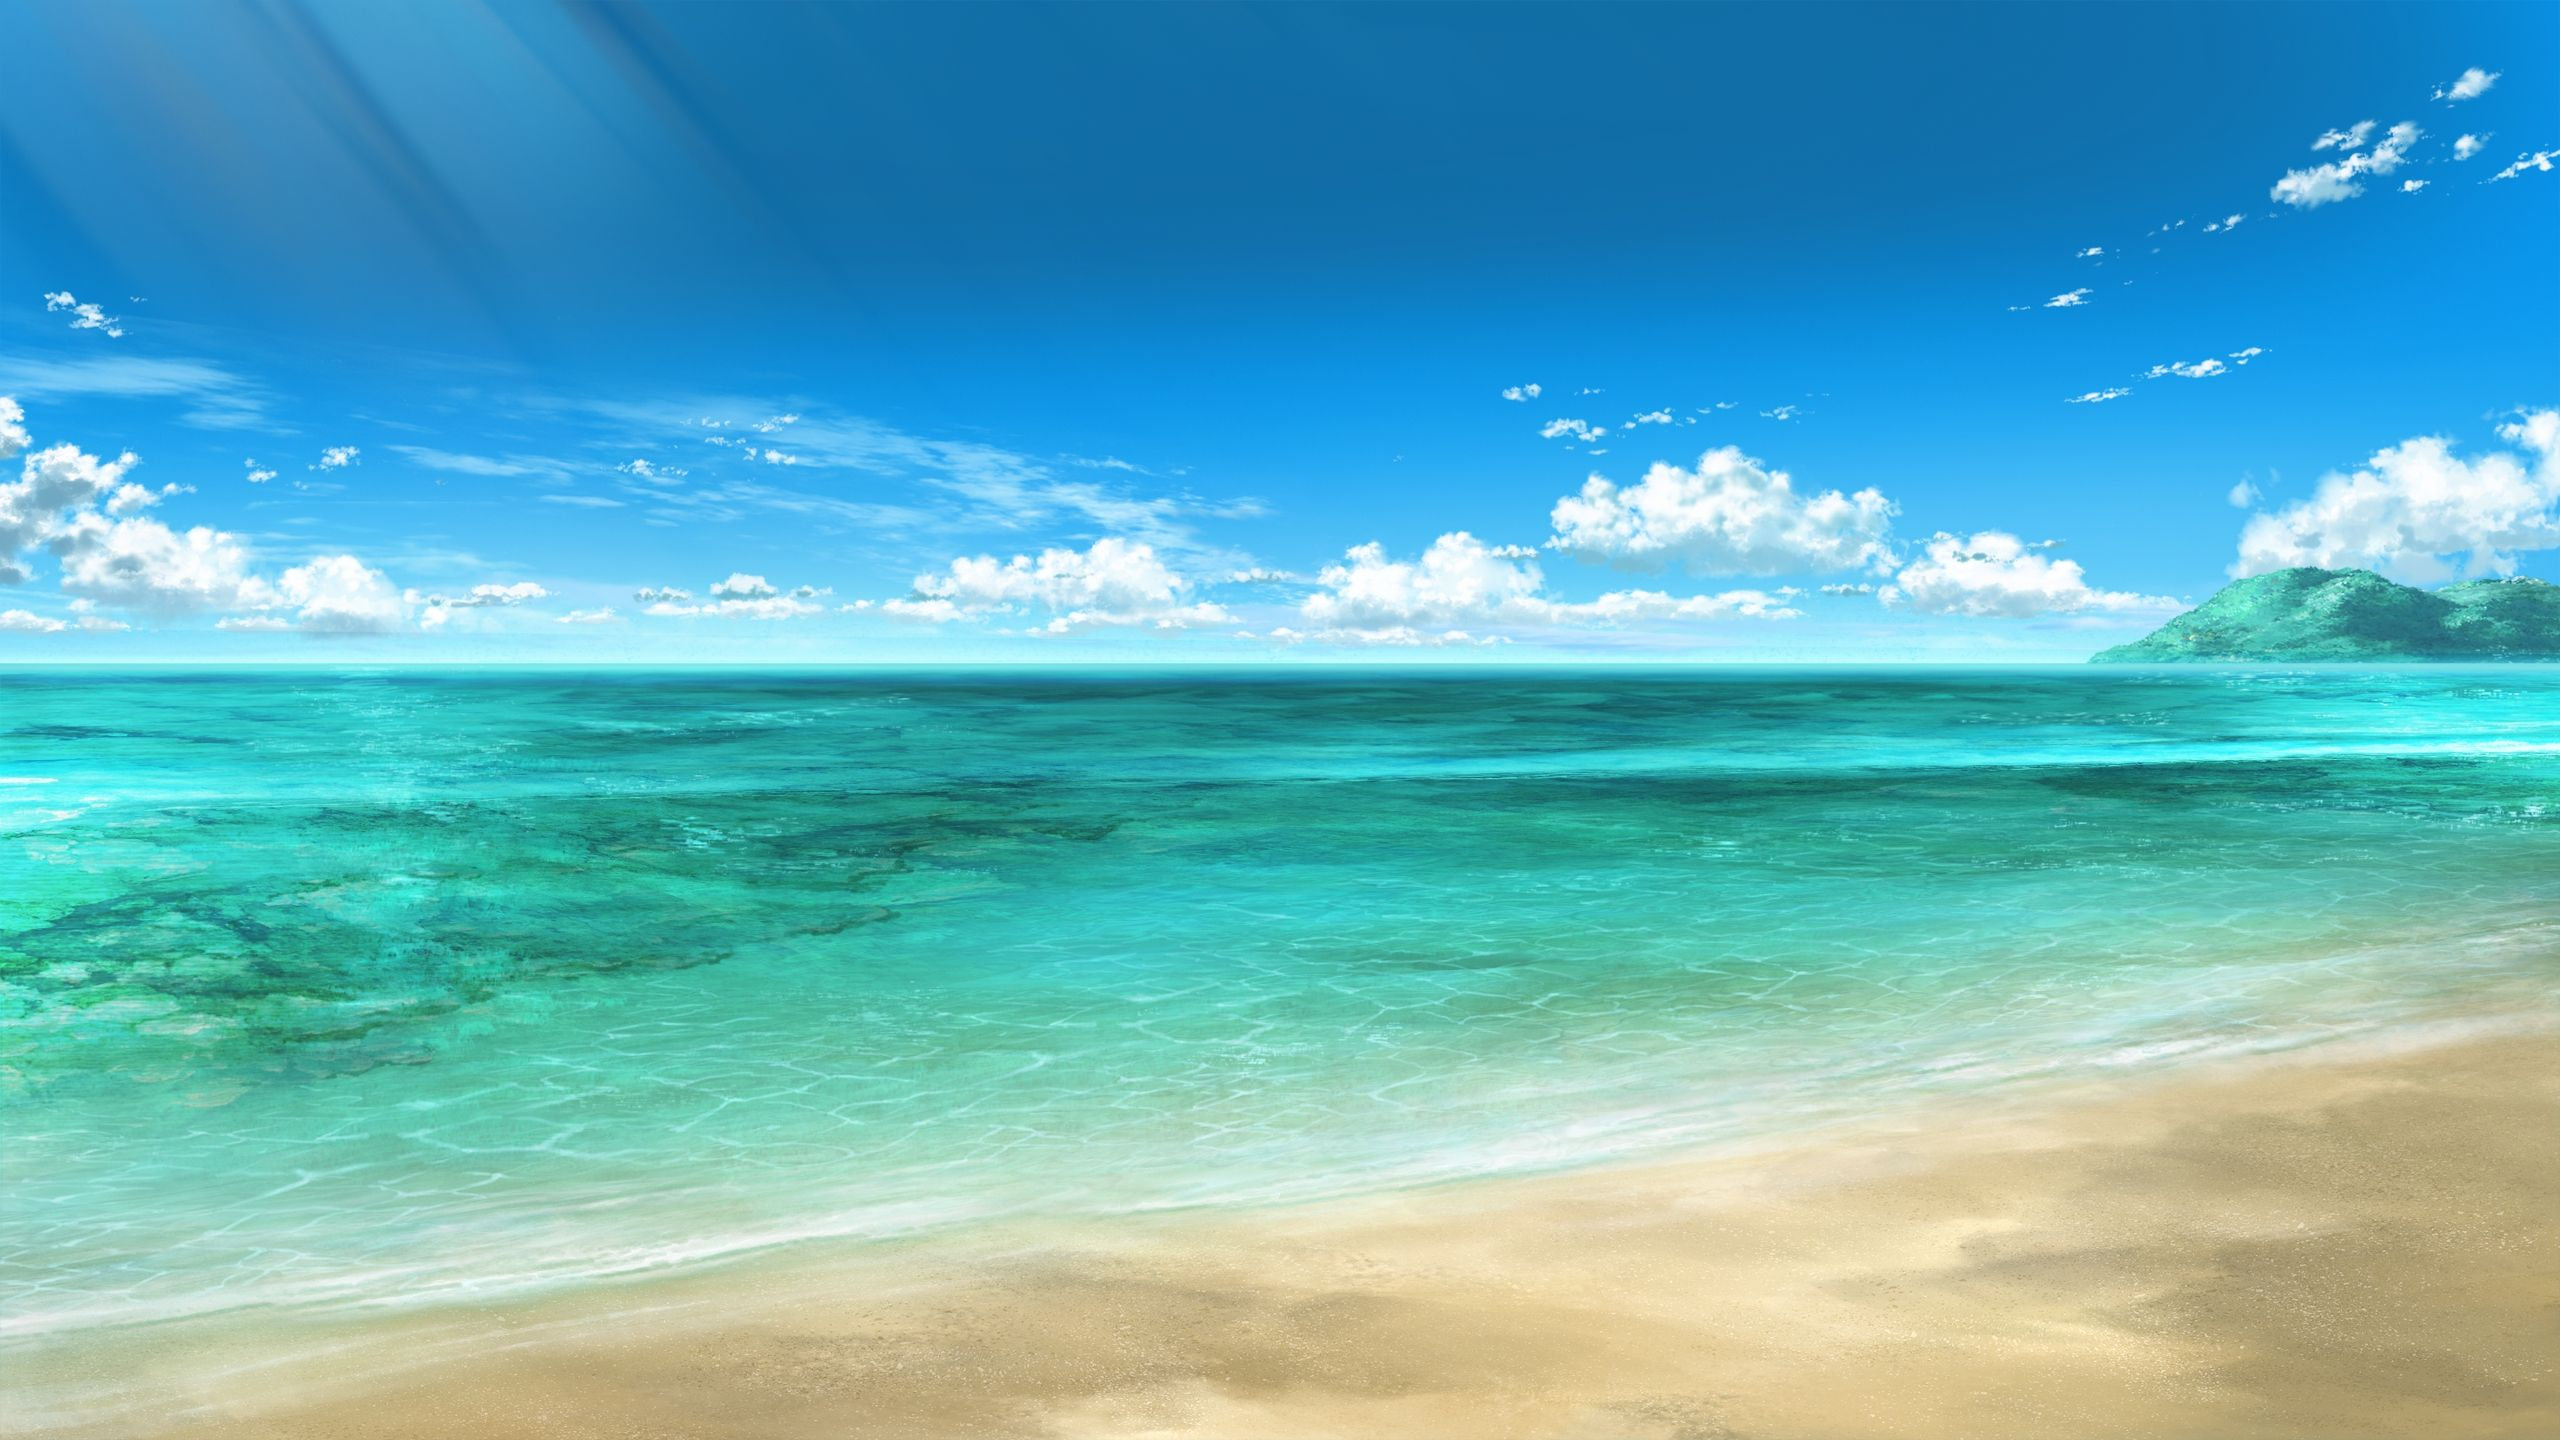 Seaside Desktop Background wallpaper free